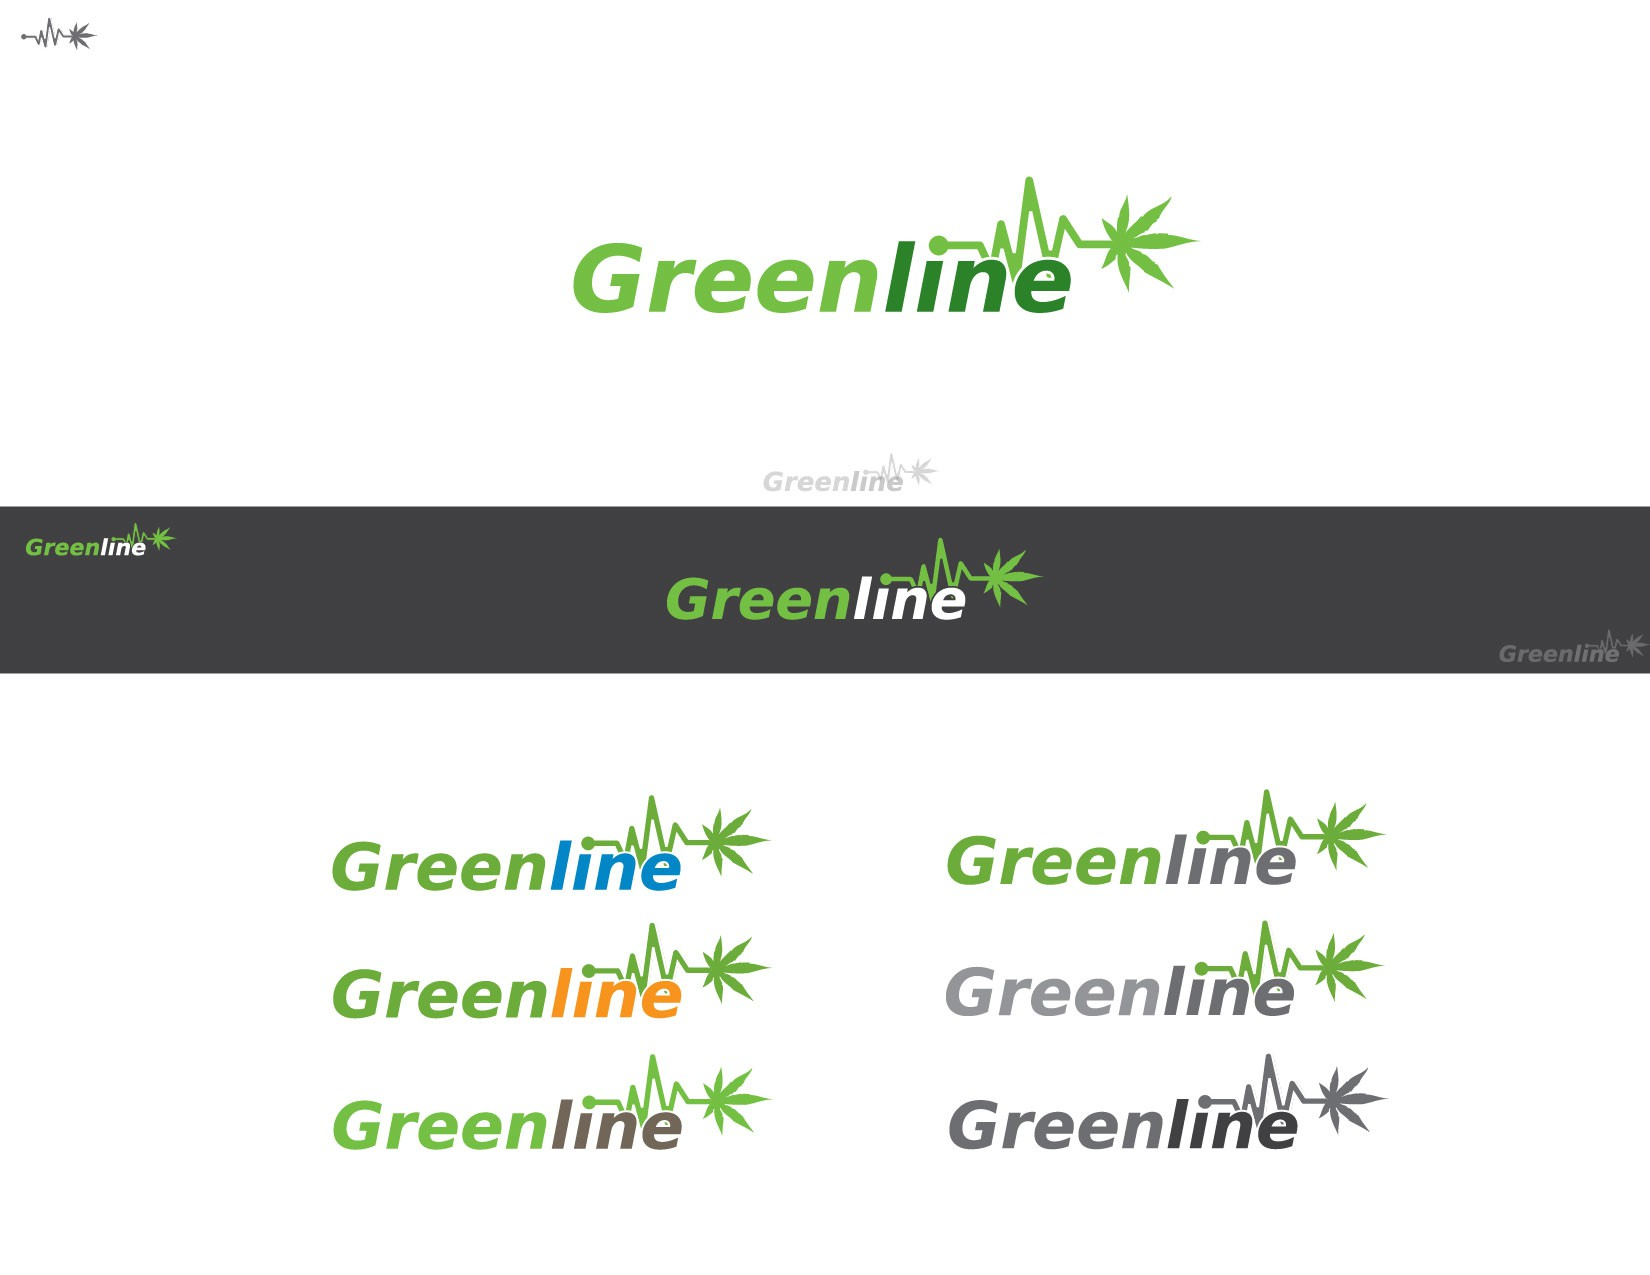 New logo wanted for Greenline